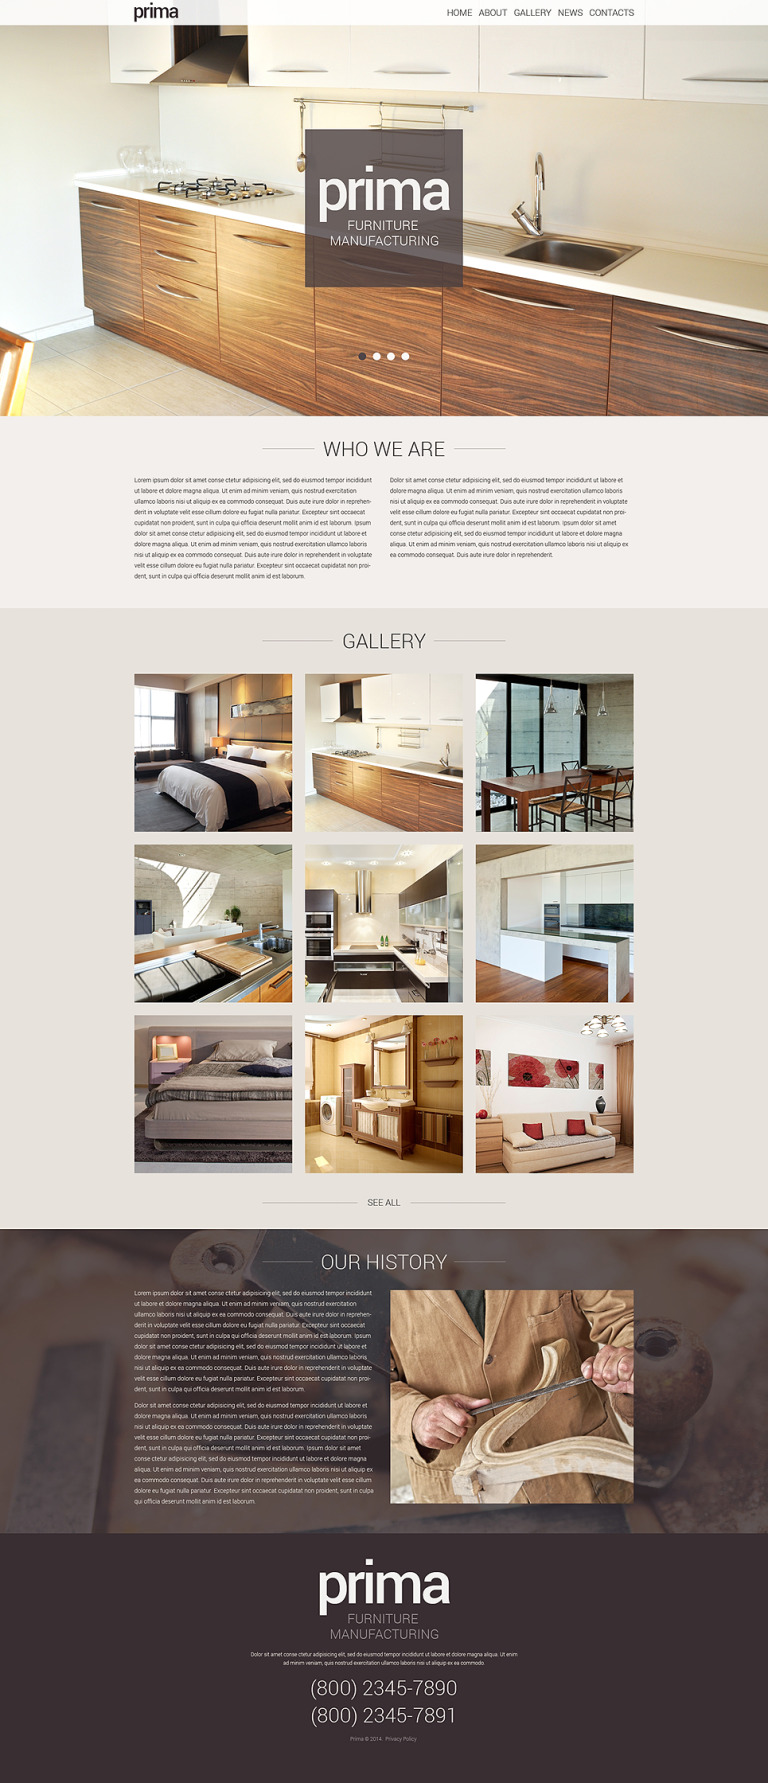 Stock Photo WordPress Theme New Screenshots BIG